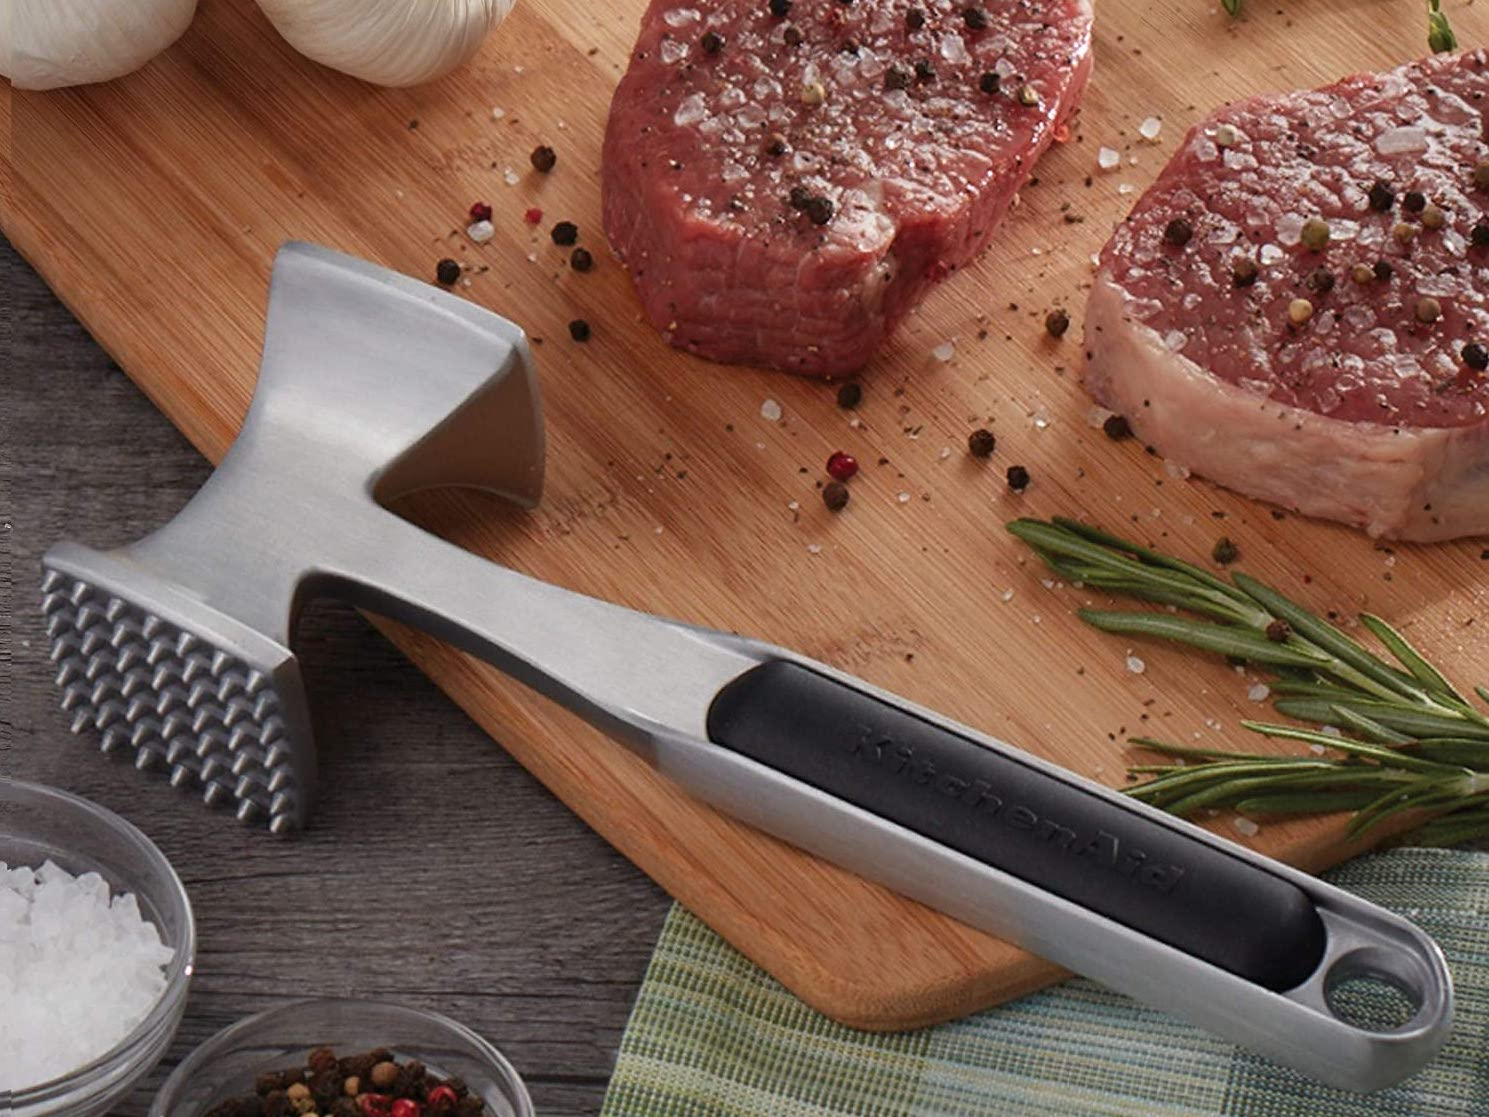 Silver hammer-shaped meat tenderizer sitting on a wood cutting board next to meat